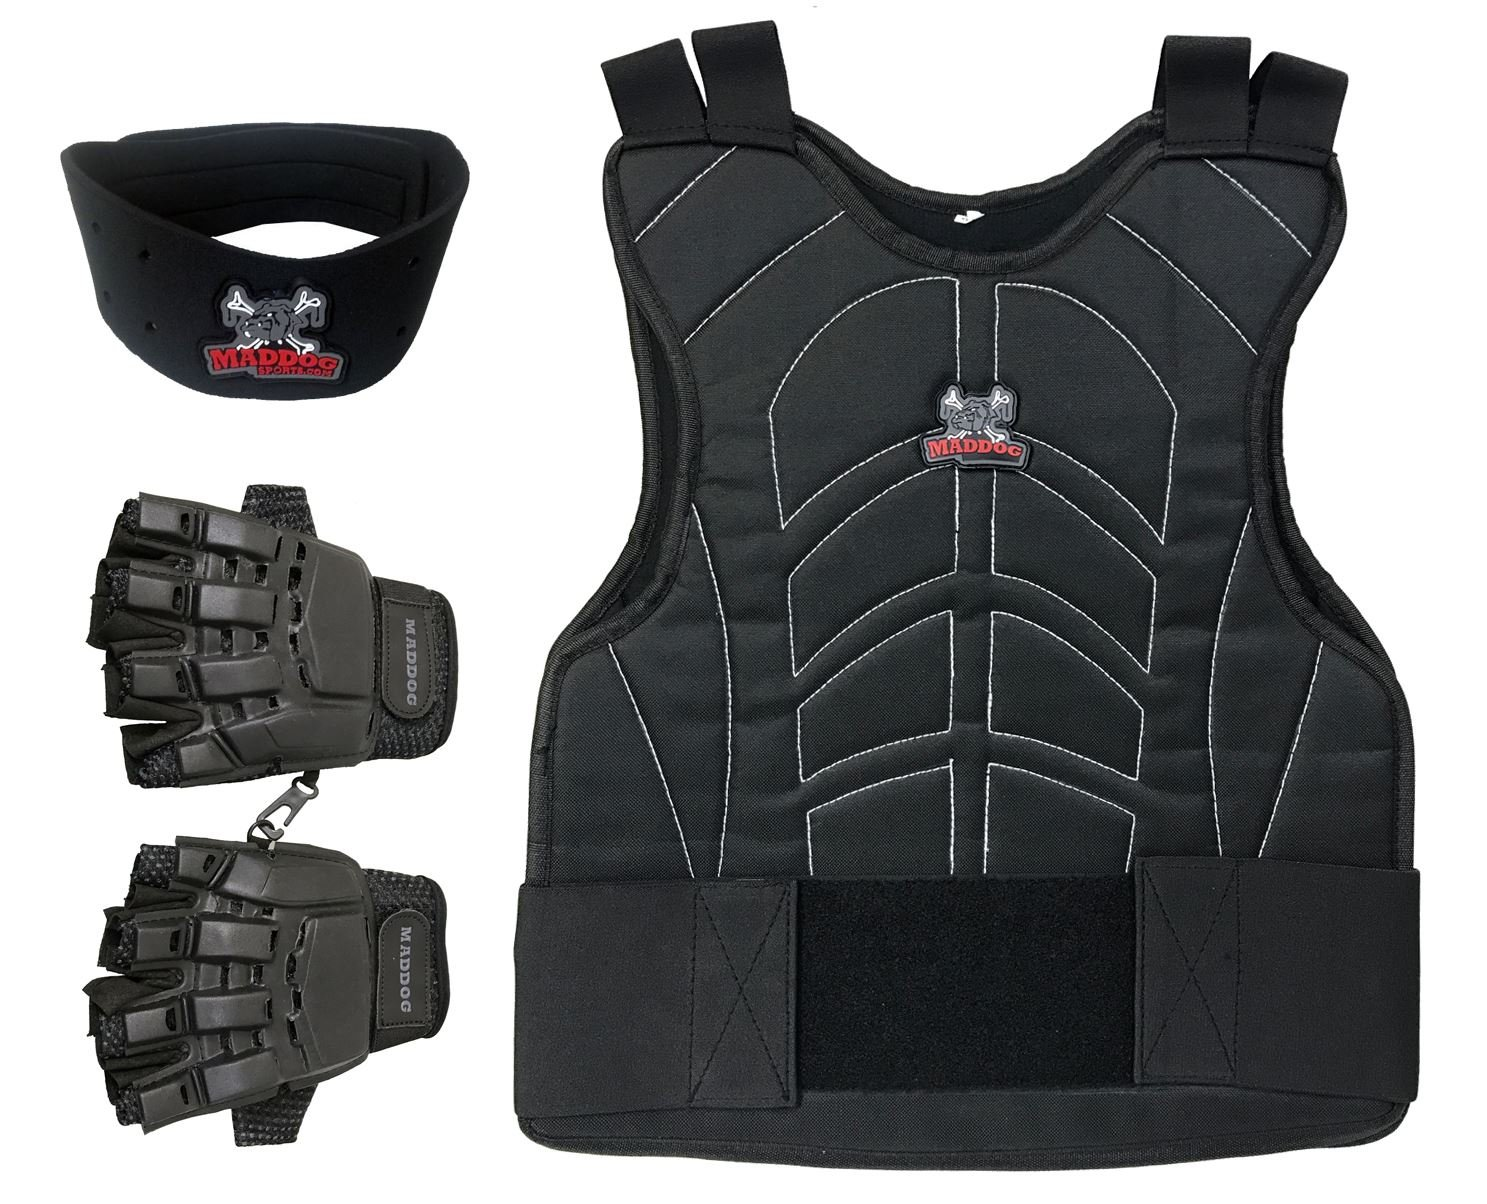 MAddog Padded Chest Protector, Tactical Half Glove, Neck Protector Combo Package - Black - Small/Medium